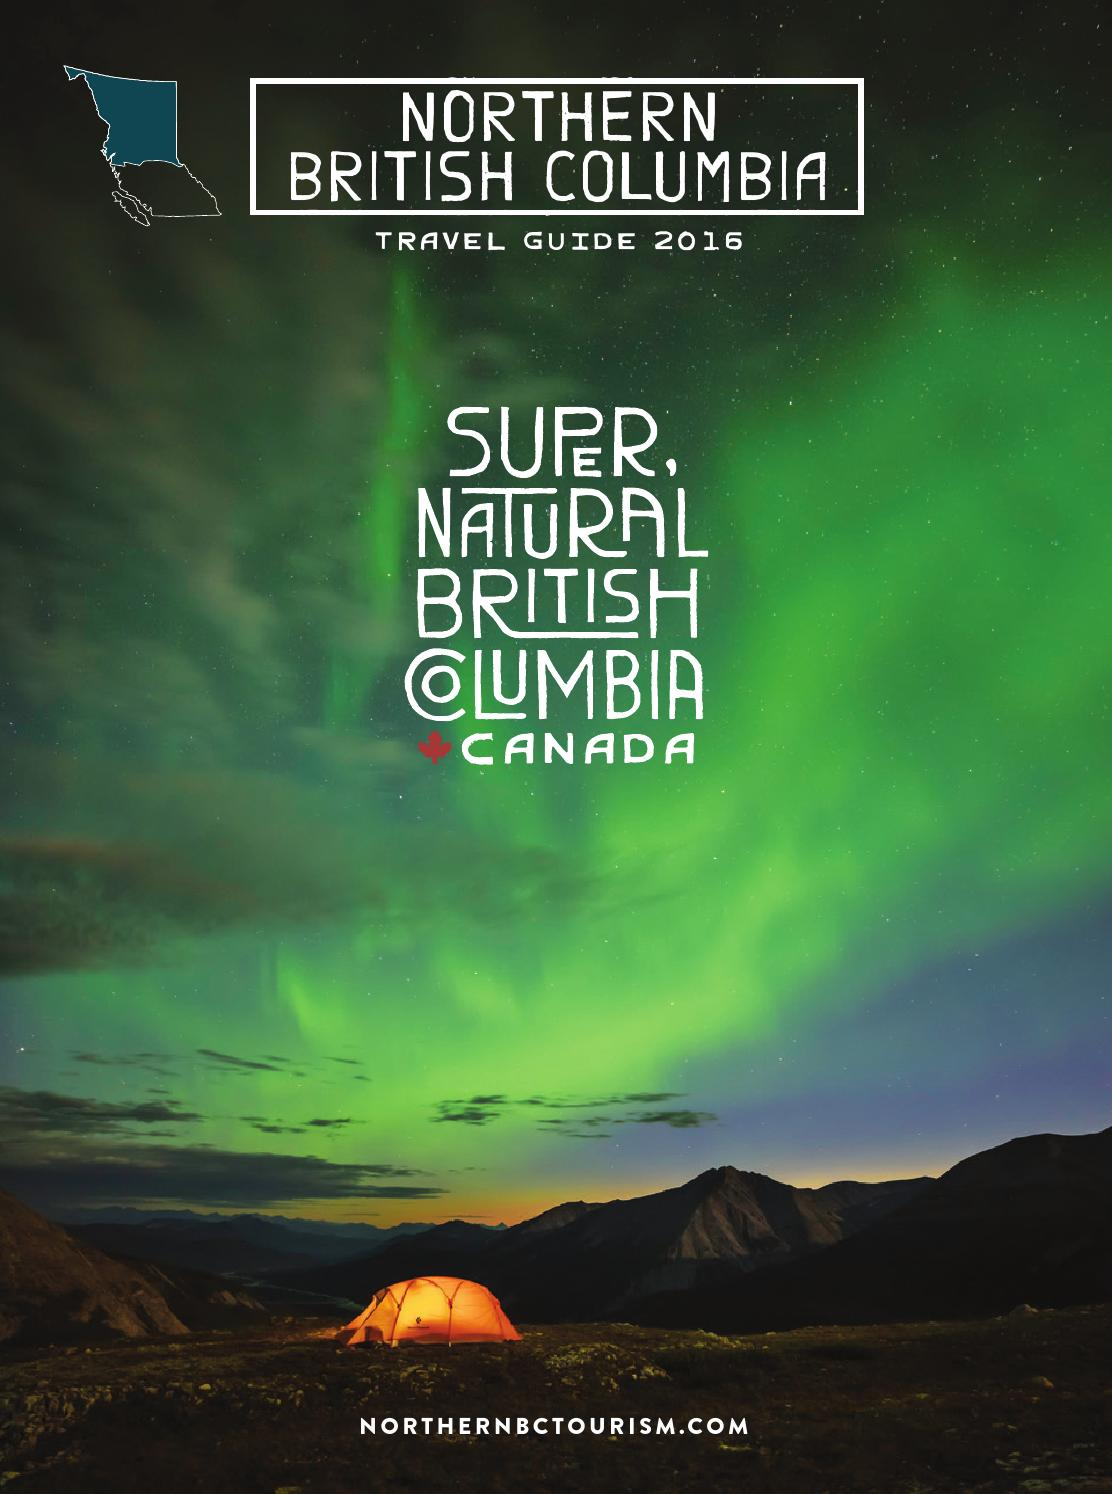 2016 Northern British Columbia Travel Guide by Northern BC